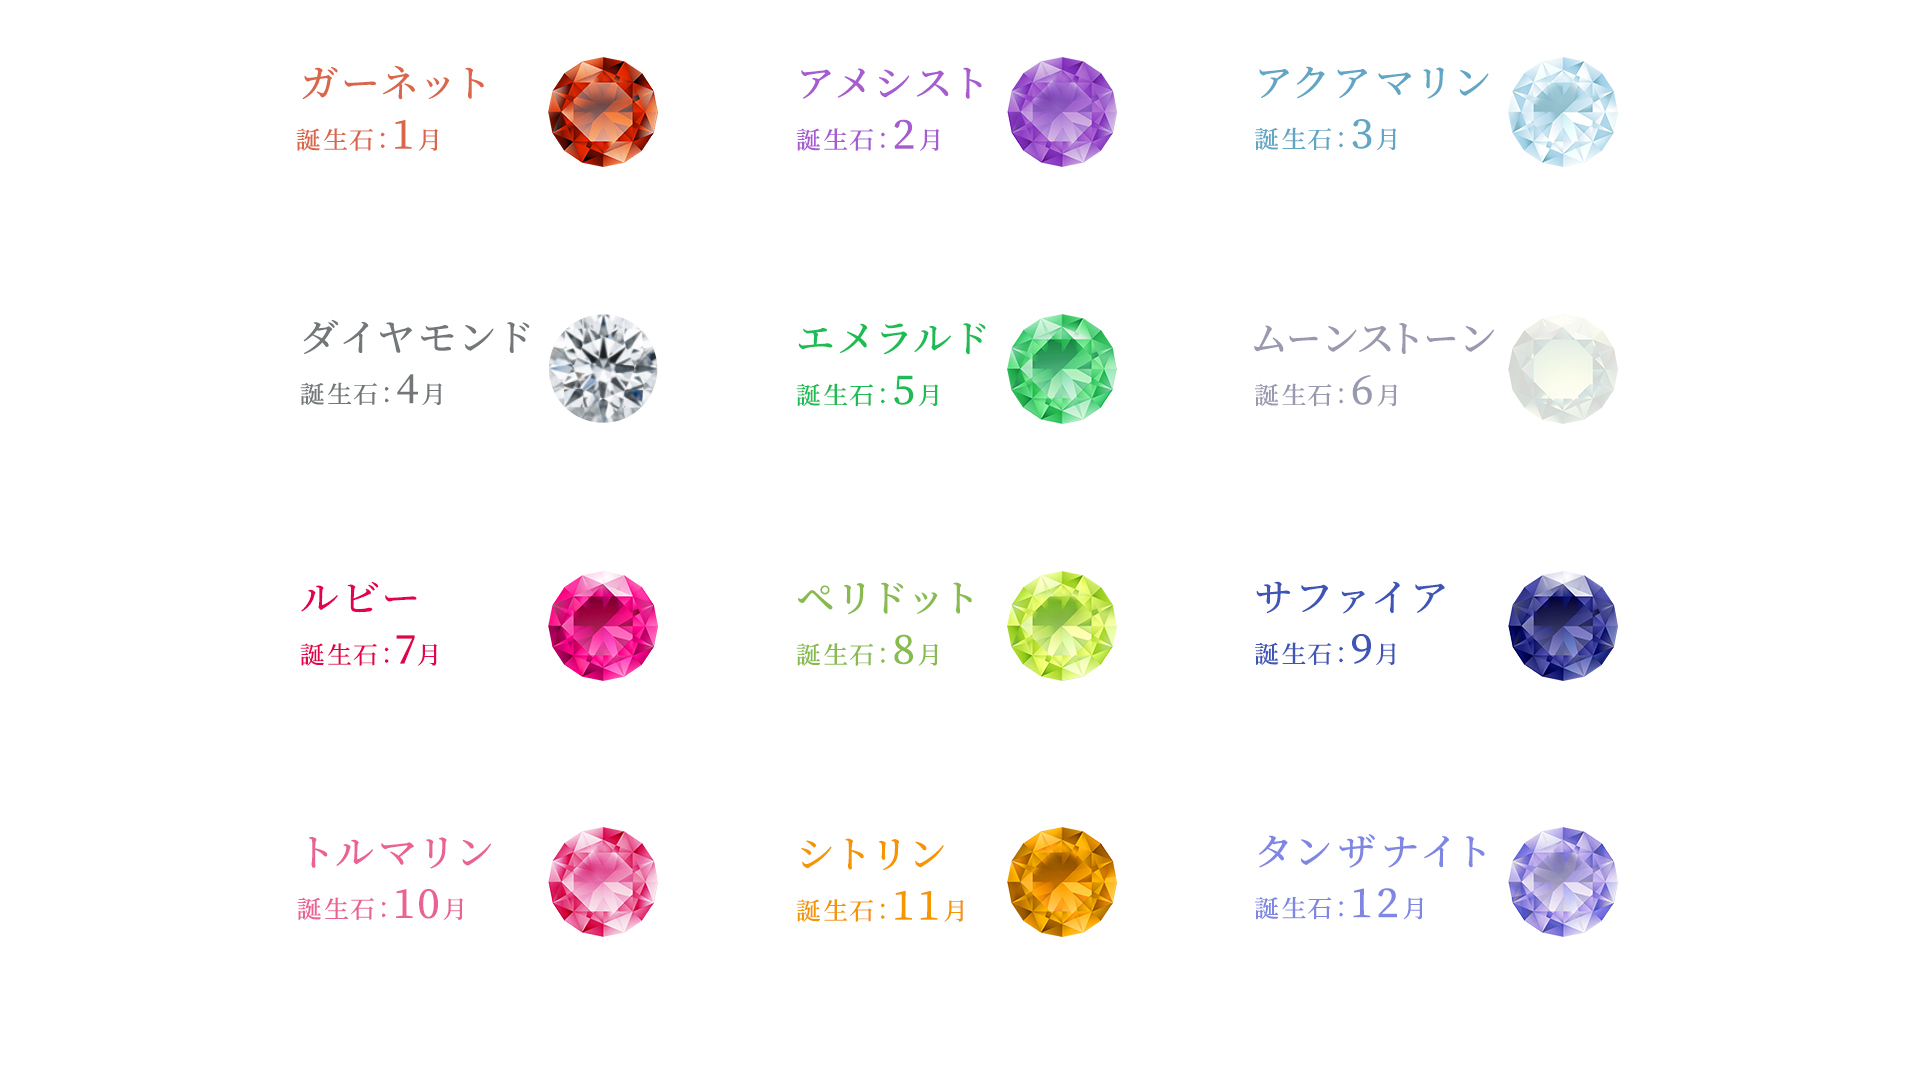 Personal Necklace パーソナルネックレス   アニバーサリージュエリーサムネイル 5